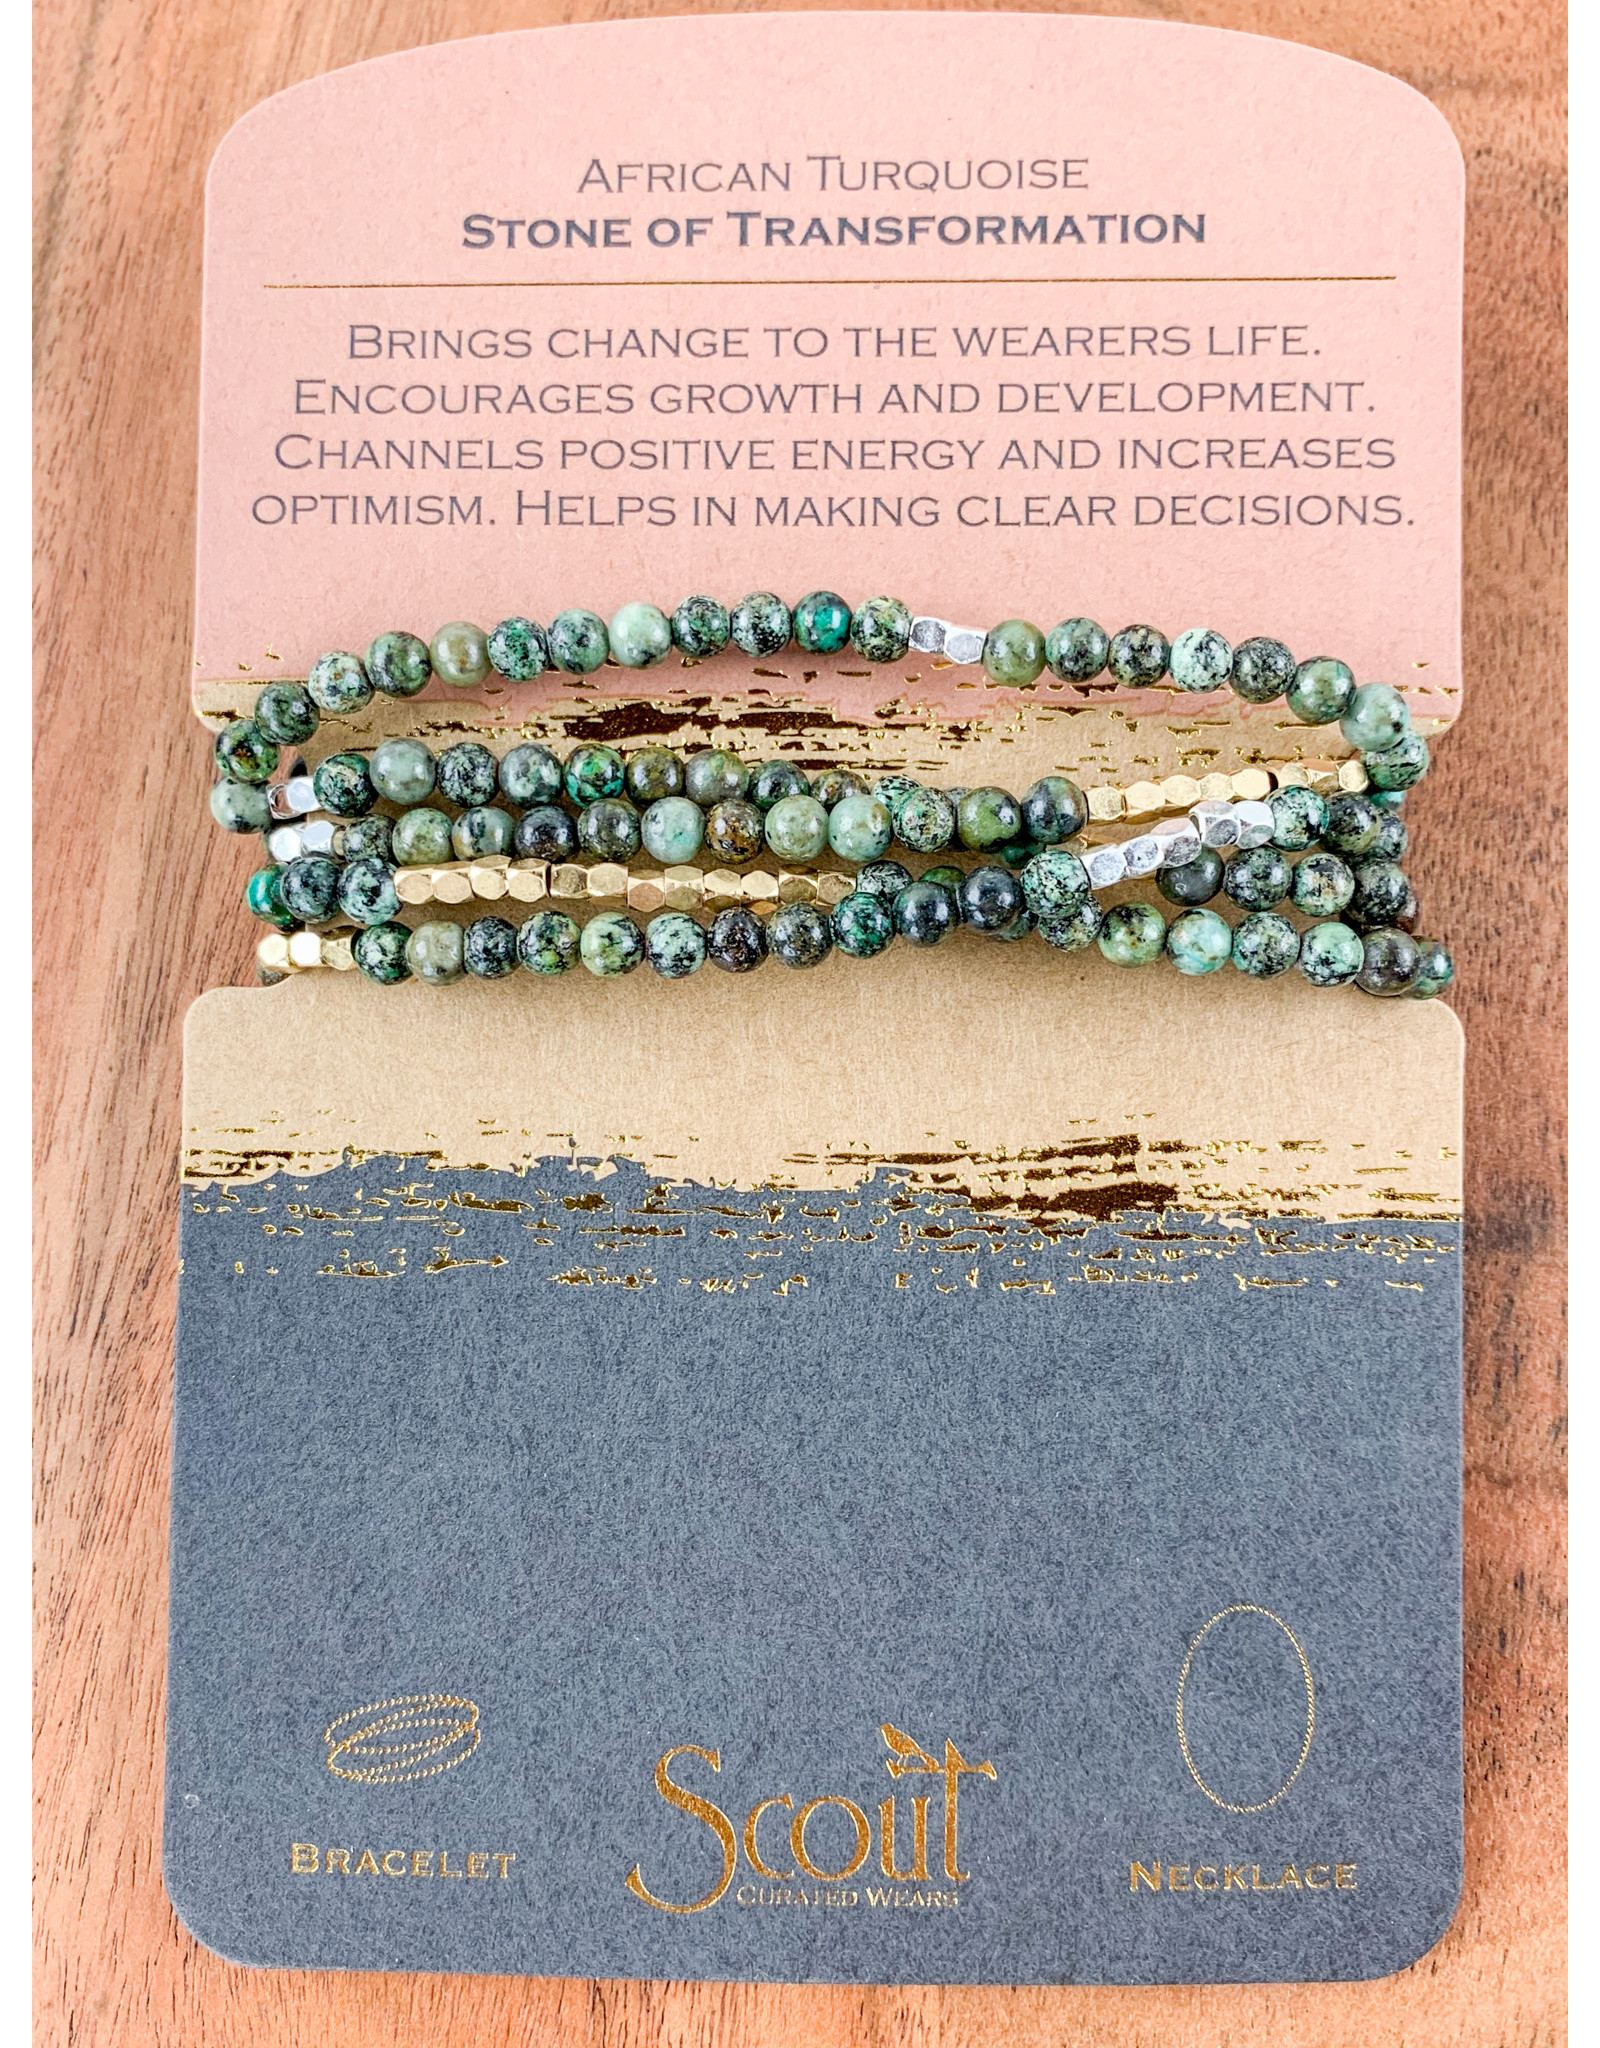 African Turquoise/Bracelet